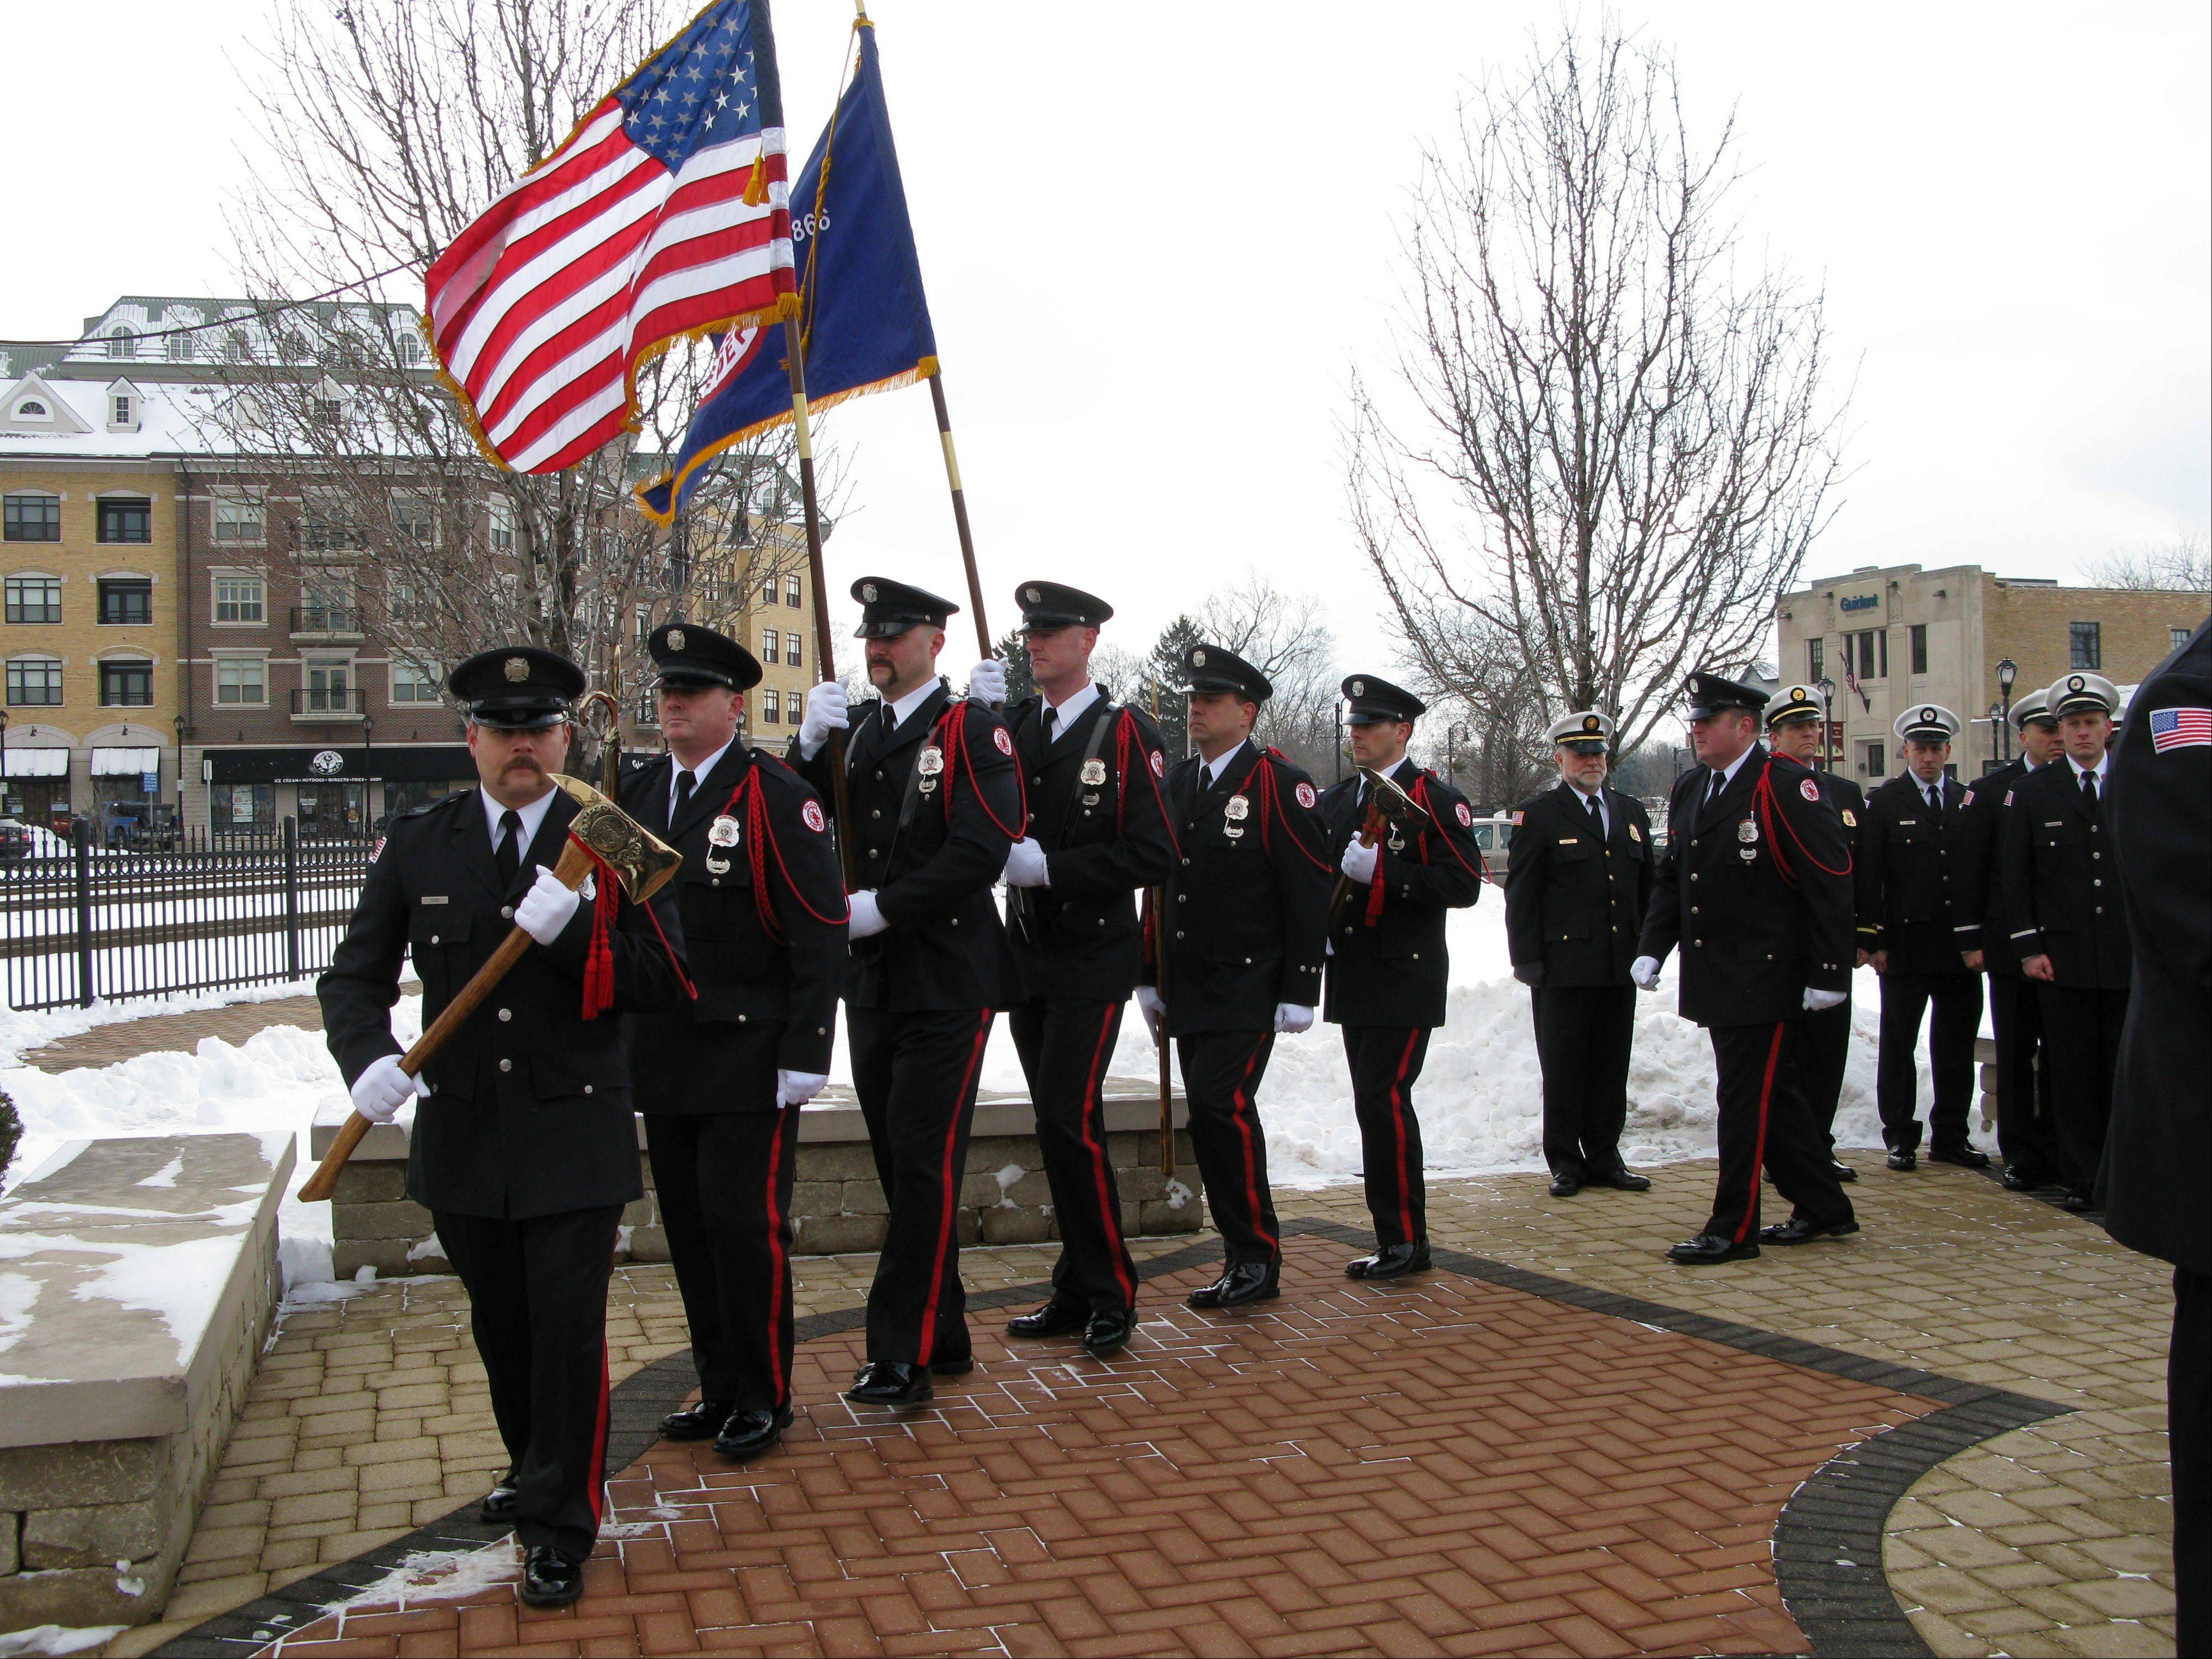 The Palatine Fire Department Honor Guard procession honored the memory of three fallen volunteer firefighters Saturday who were killed in a fire on this date 40 years ago. Roughly 200 people, including firefighters from area departments, attended the ceremony at the Firefighters Memorial at the corner of North Brockway and West Slade streets in downtown Palatine.